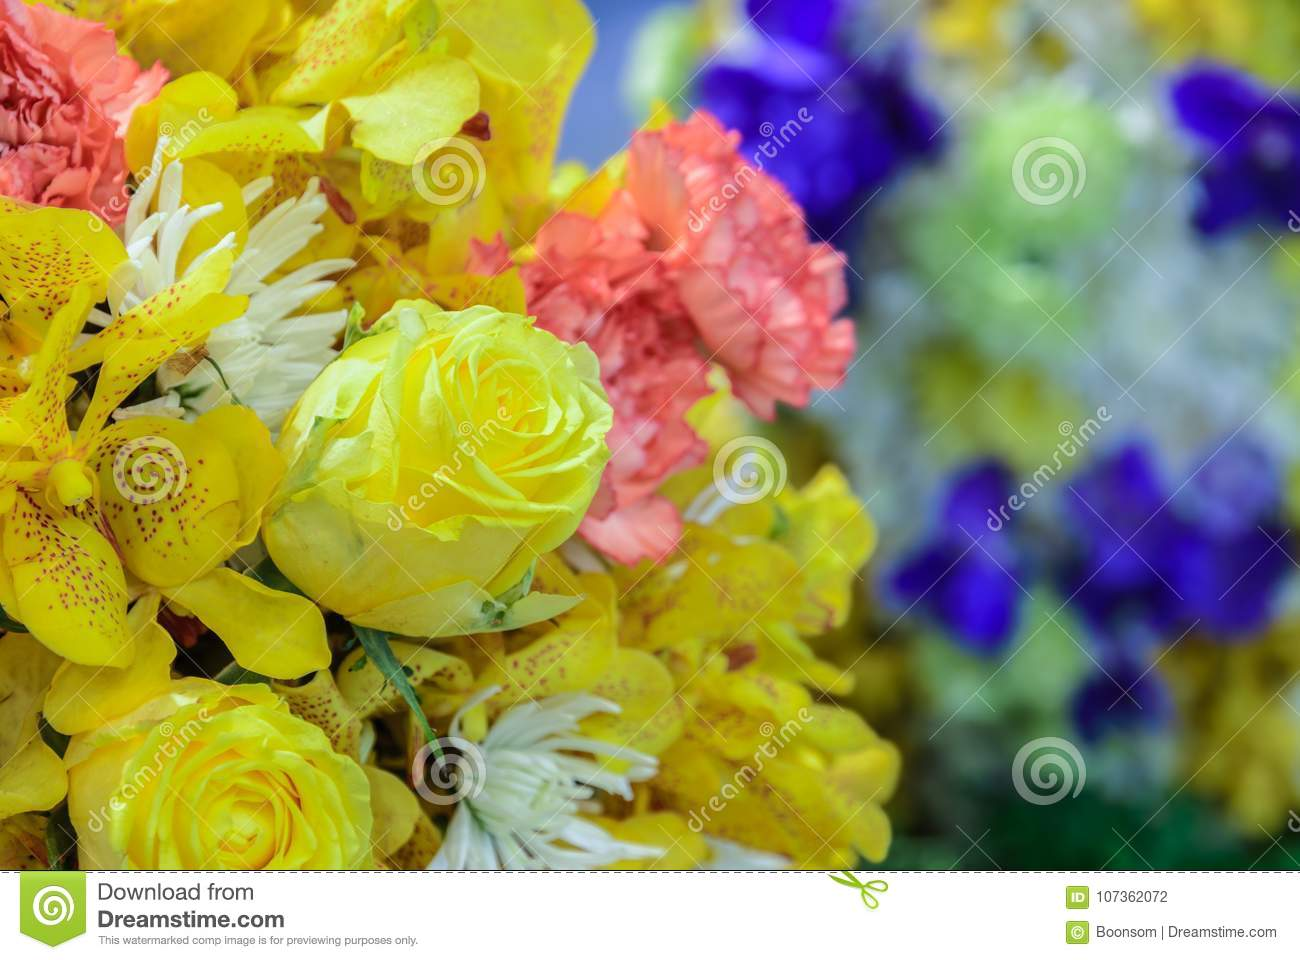 Beautiful Bouquet Flowers With Different Types Of Yellow Flowers